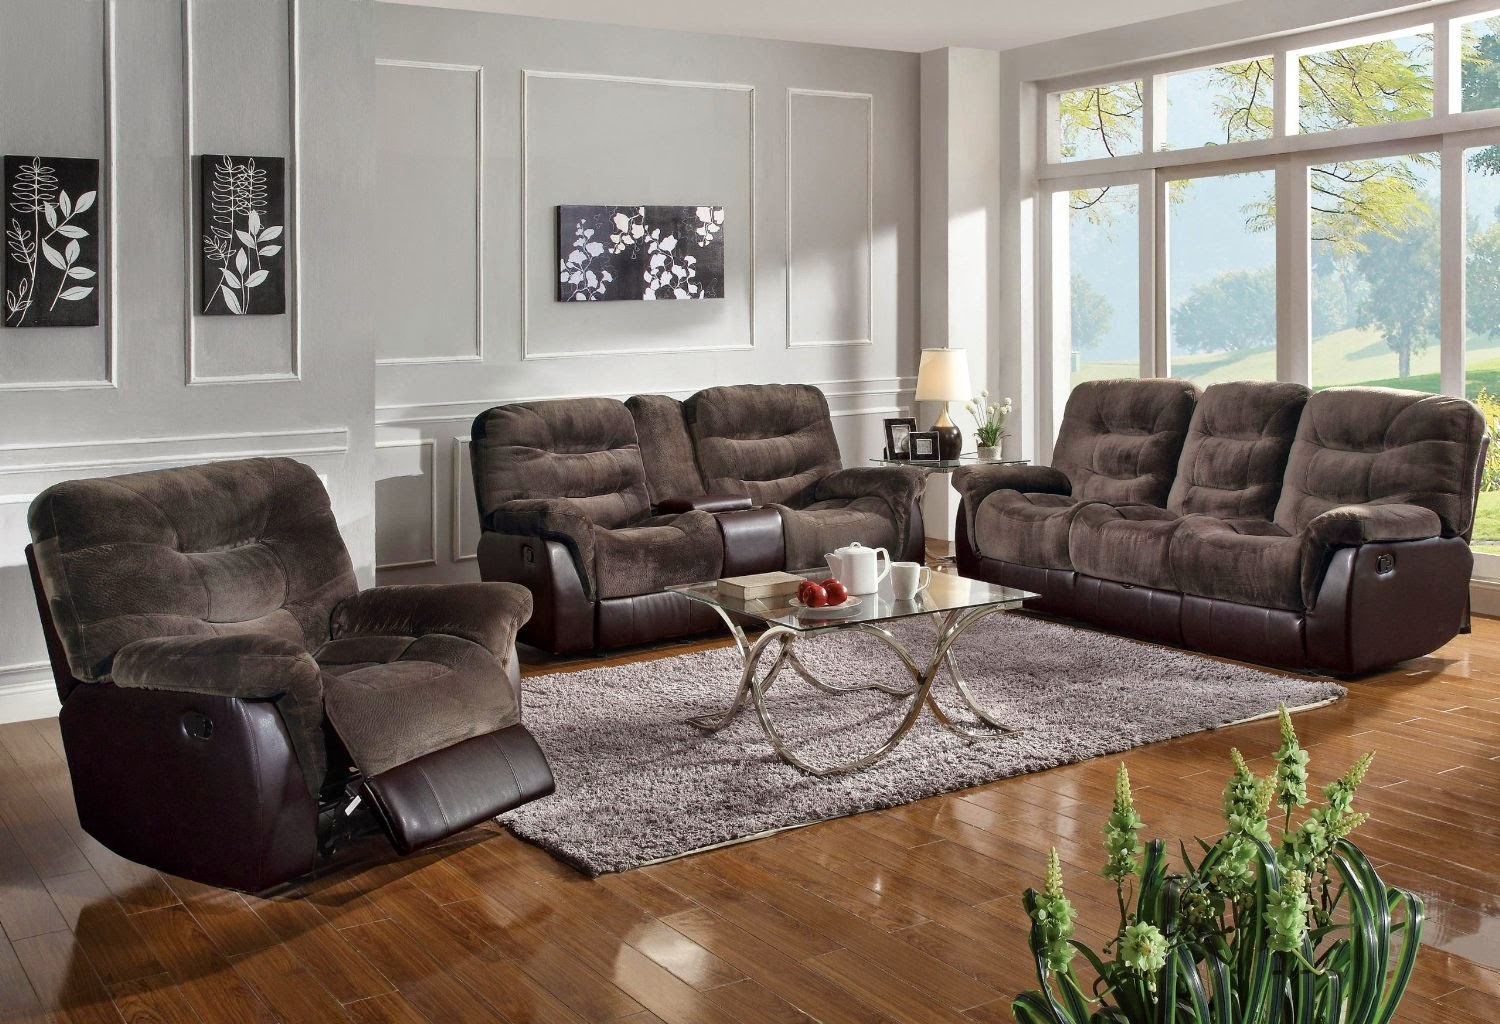 Attirant Reclining Sofa Sectionals For Small Spaces